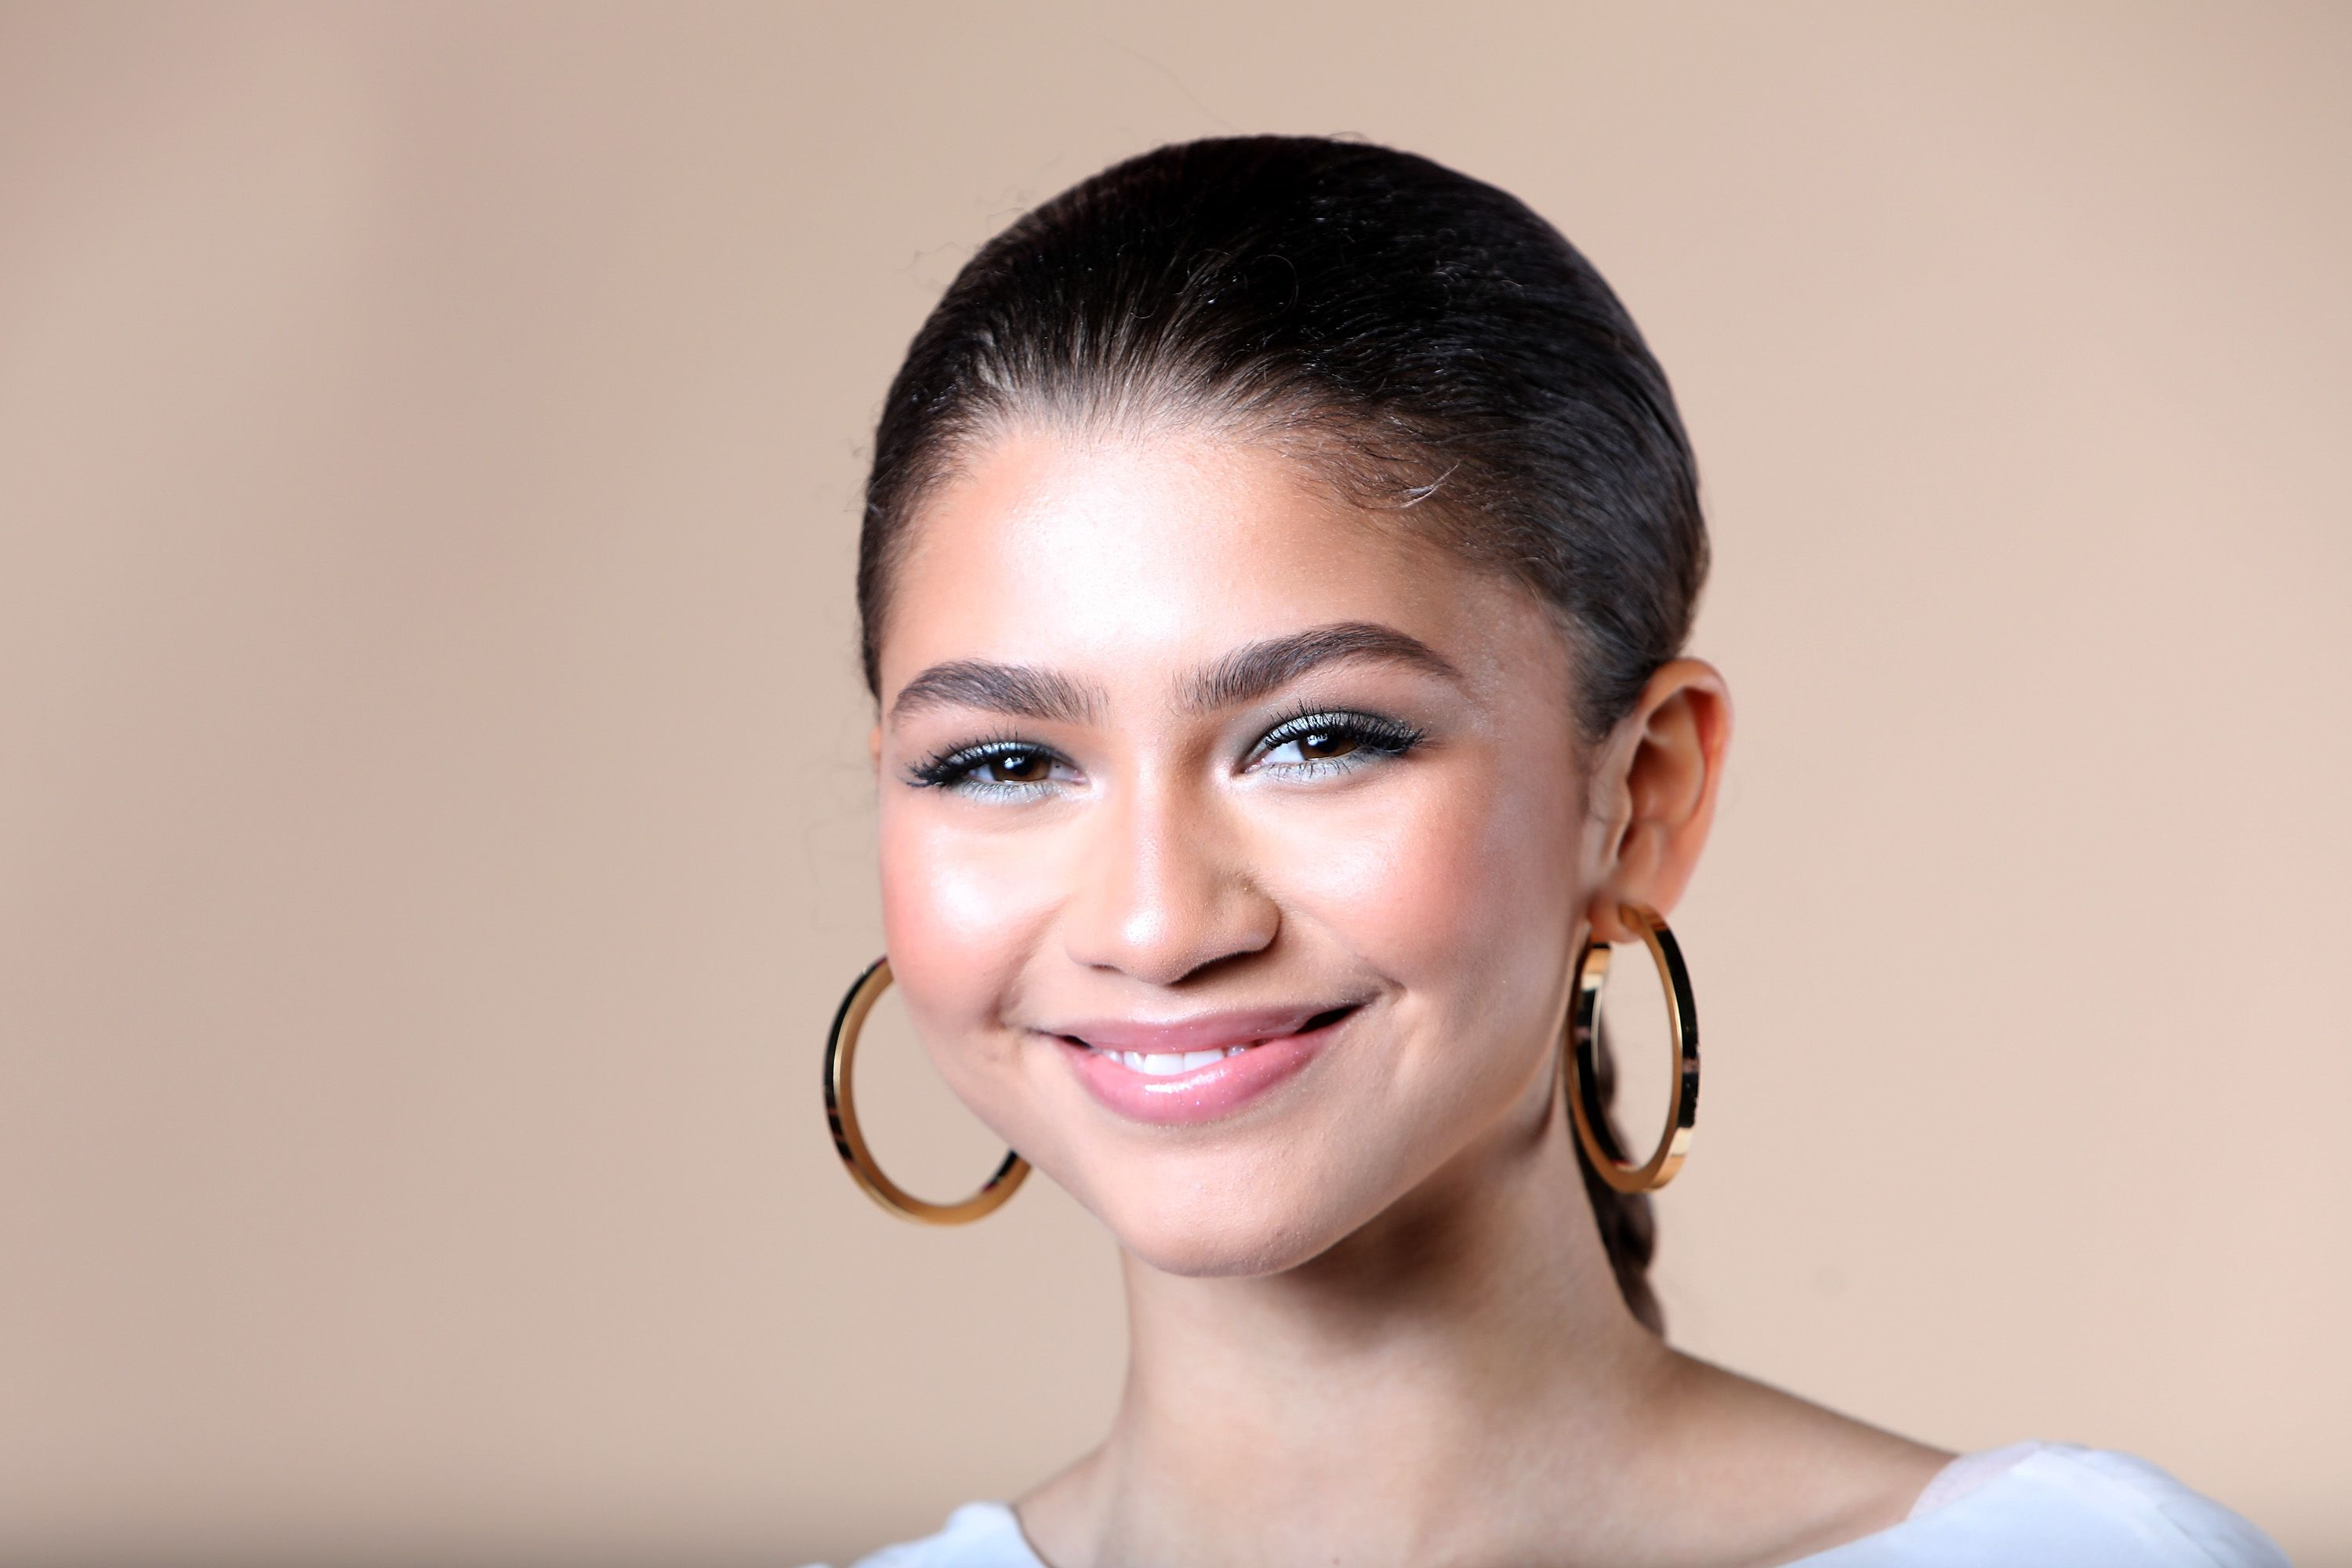 Zendaya is the youngest lead drama actress to win an Emmy